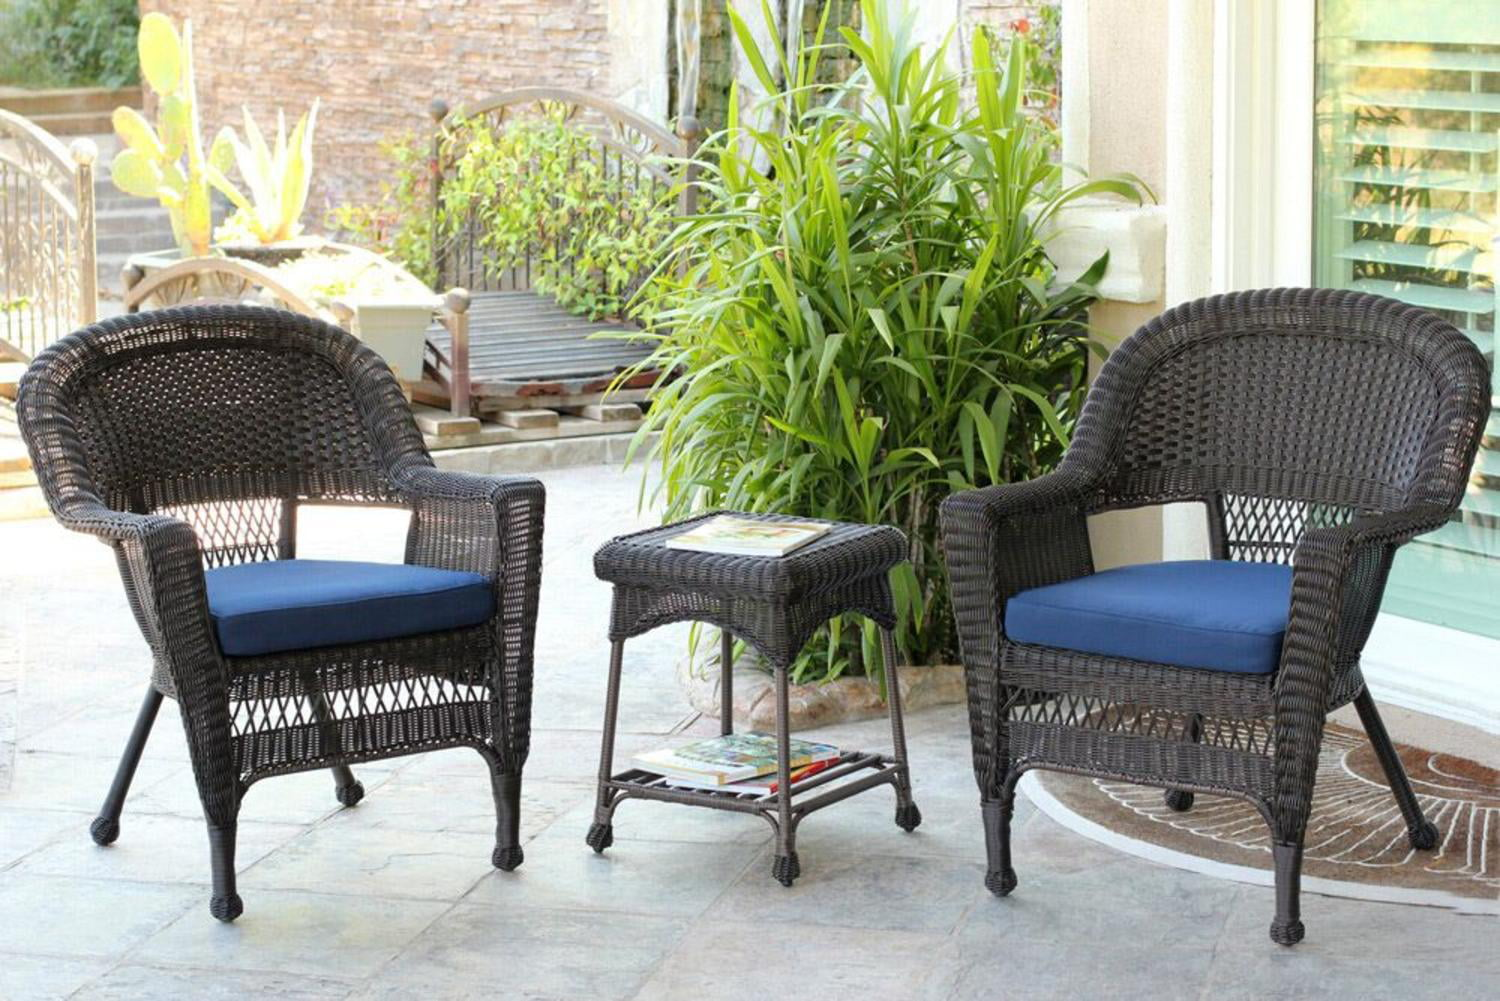 4pc outdoor patio garden furniture wicker rattan sofa set black walmartcom